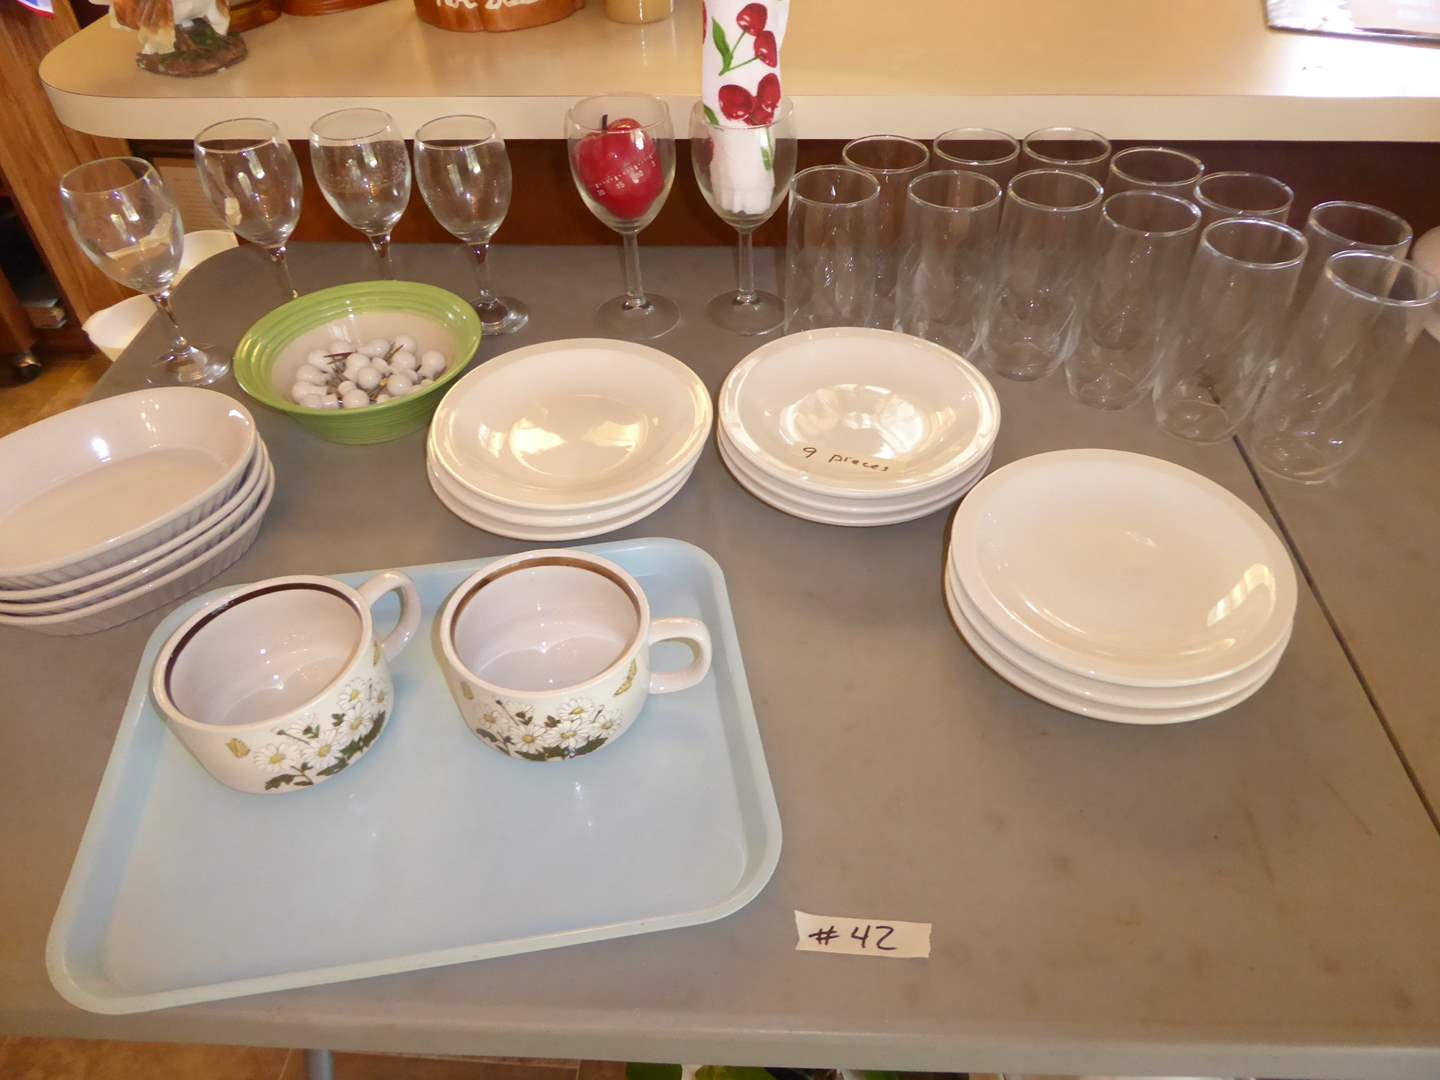 Lot # 42 - Culinary Arts Cafeware, Oven Safe Dishes & Glassware  (main image)